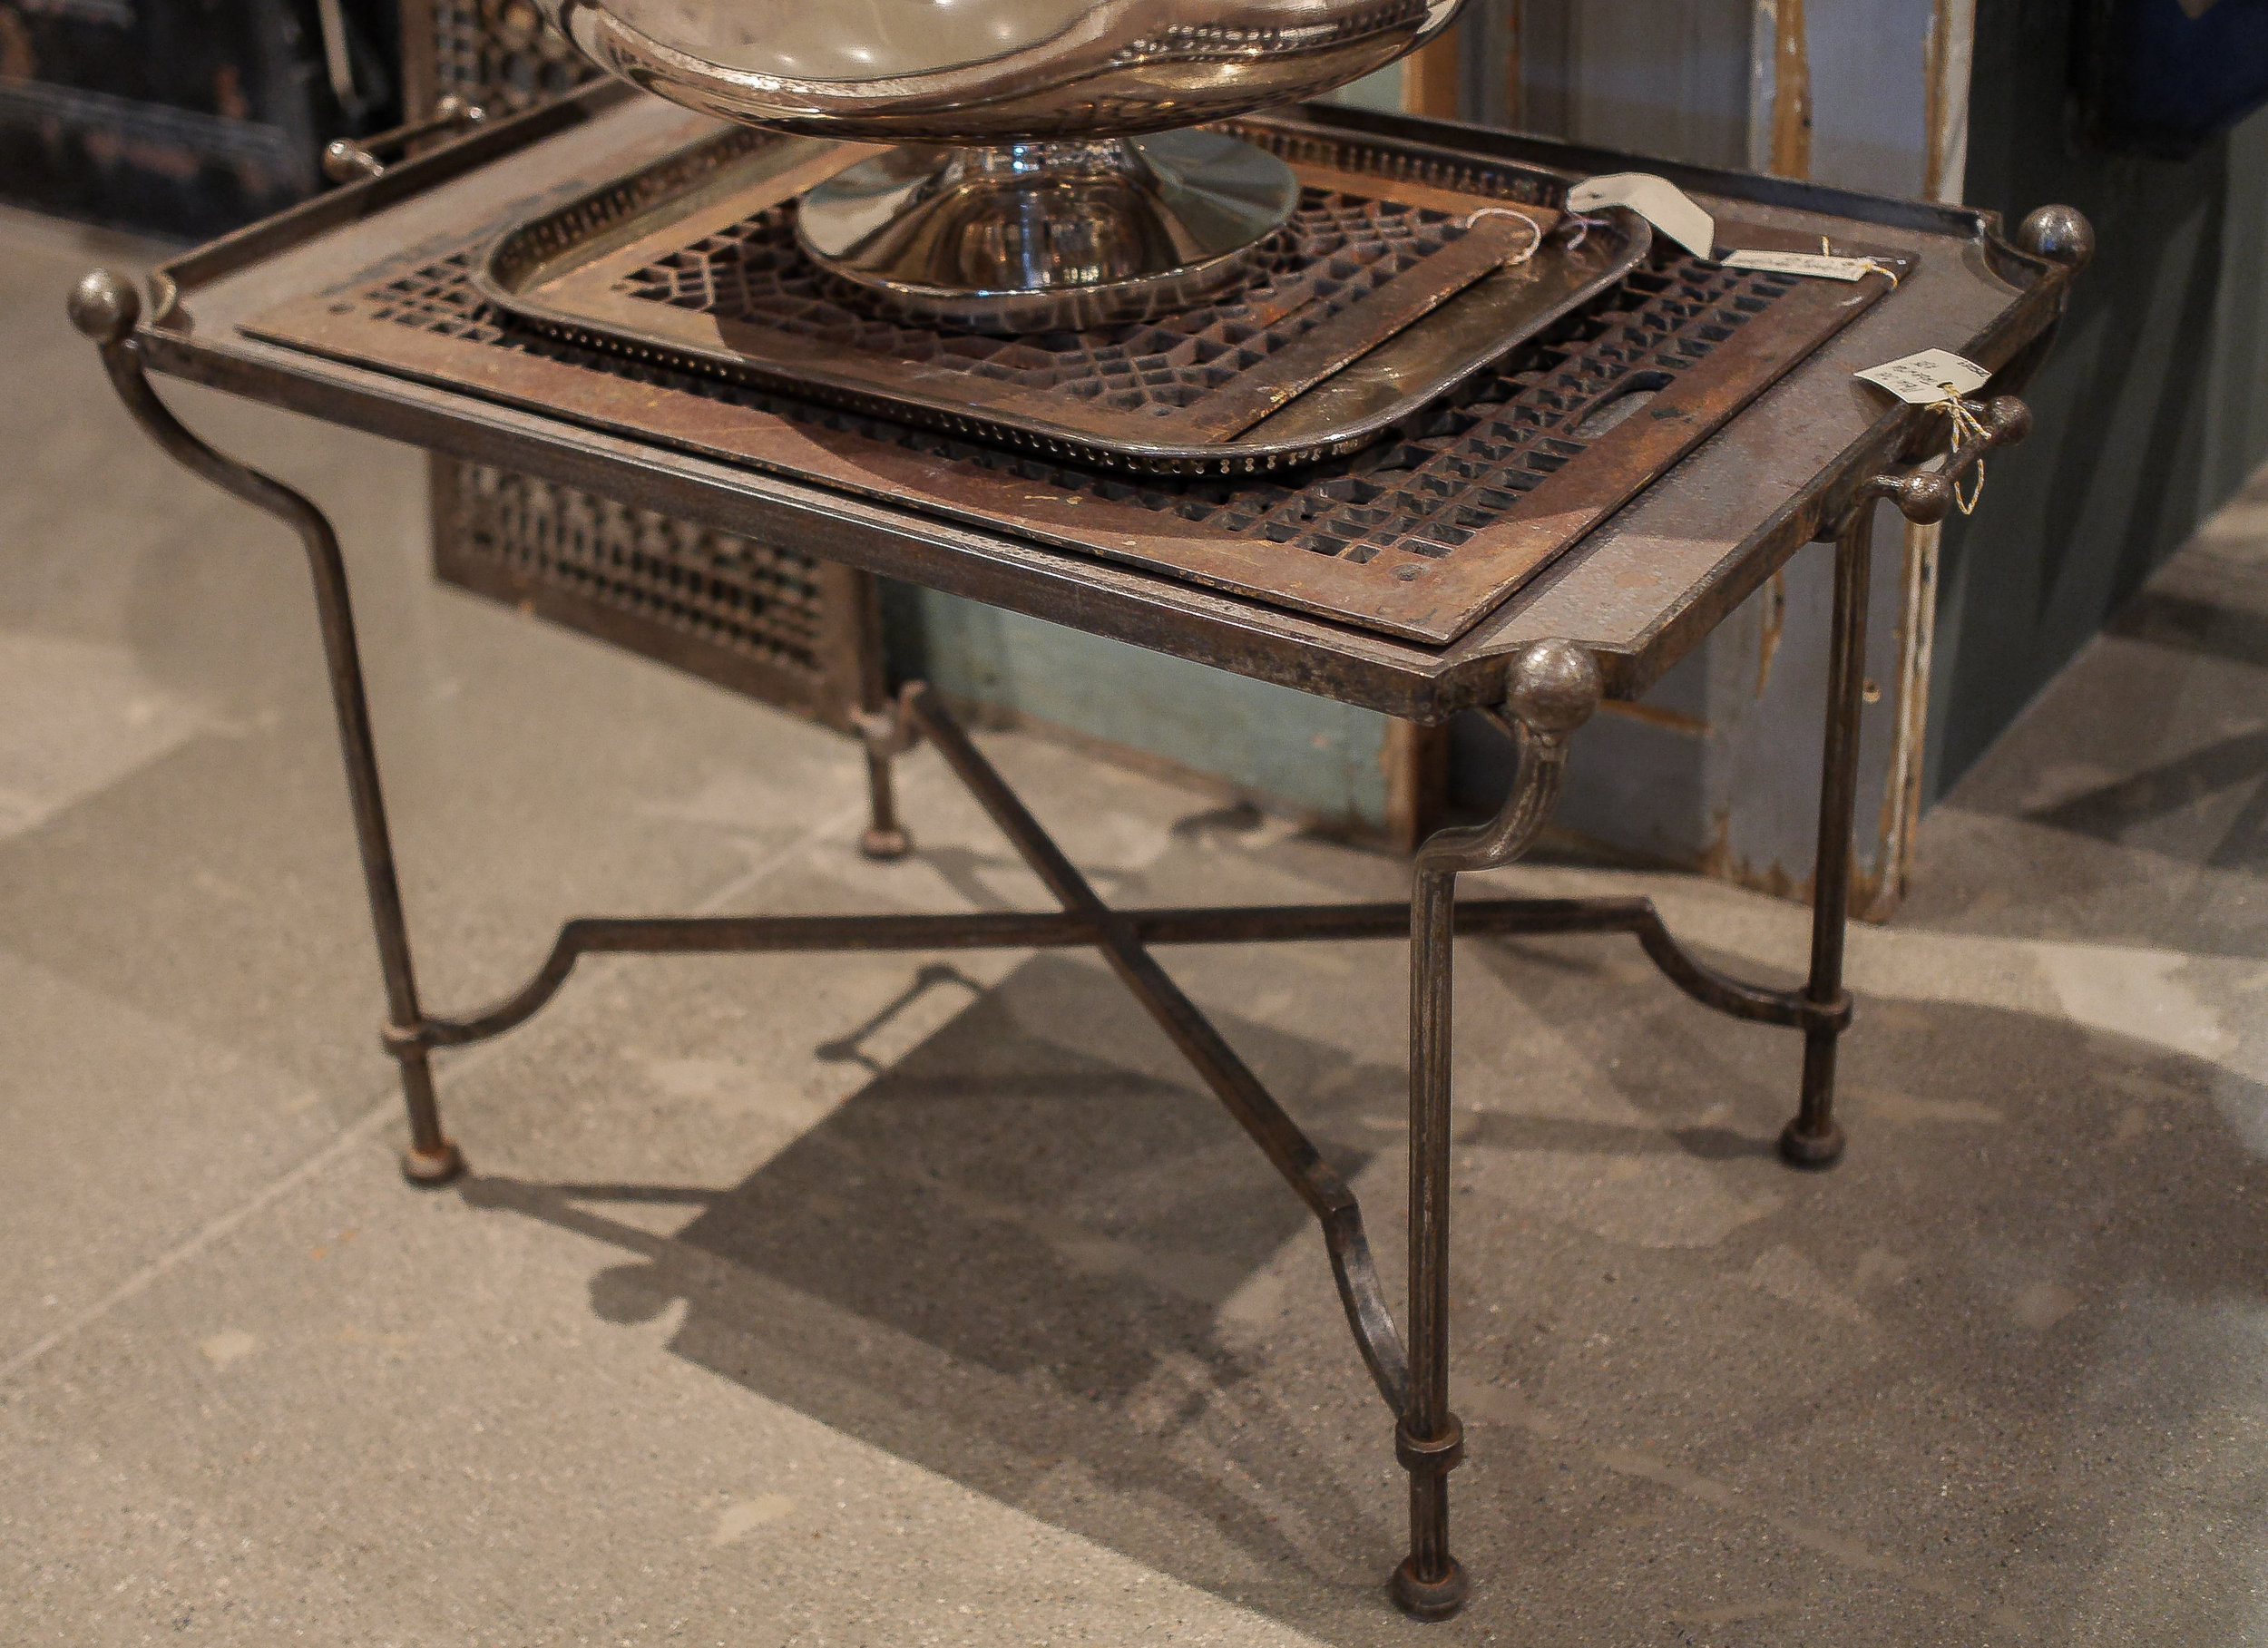 Metal Side Table with Tray.jpg